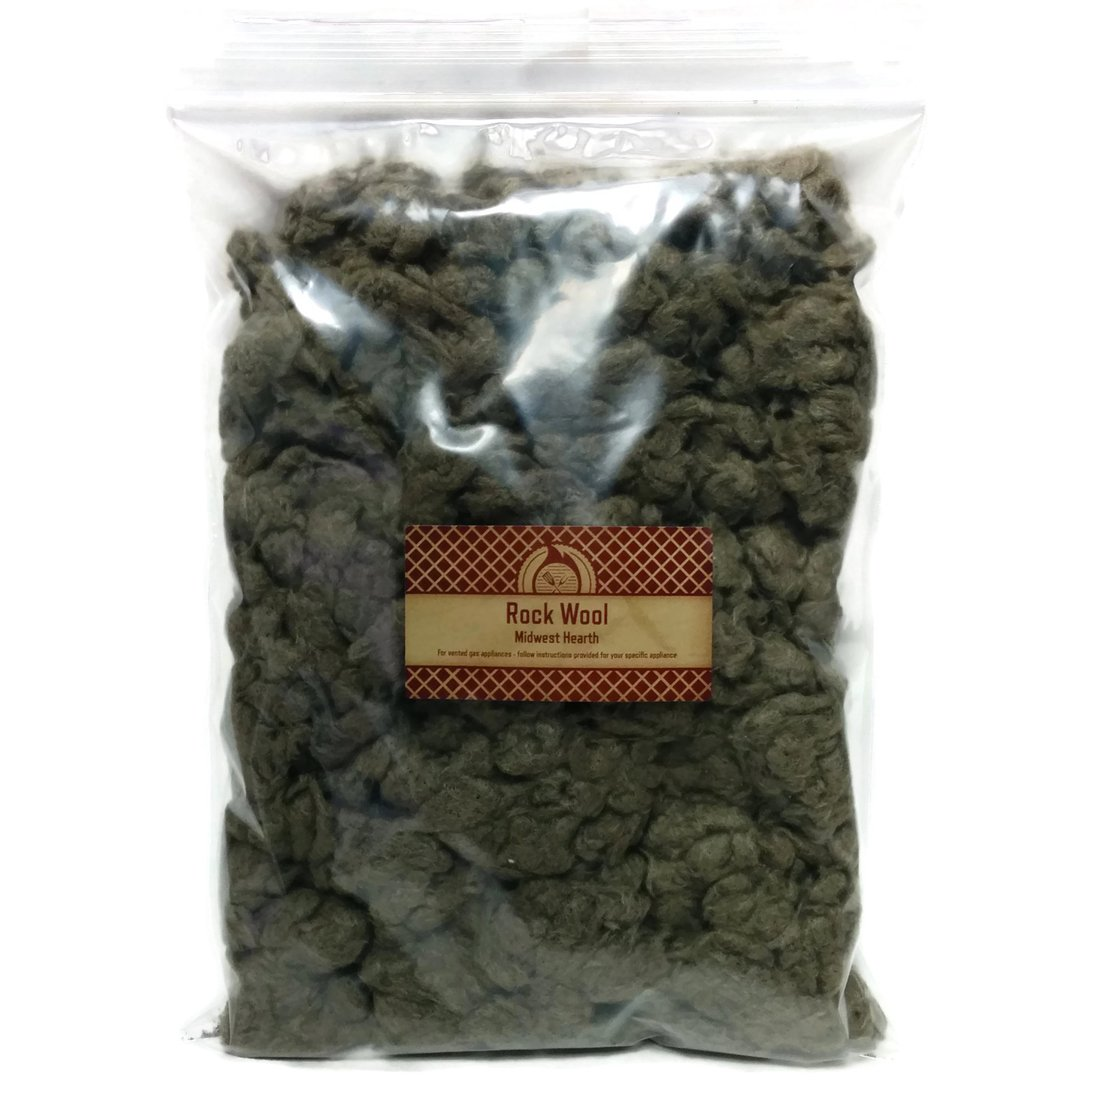 Midwest Hearth Rock Wool for Gas Log - 6 oz. Bag MH Rock Wool